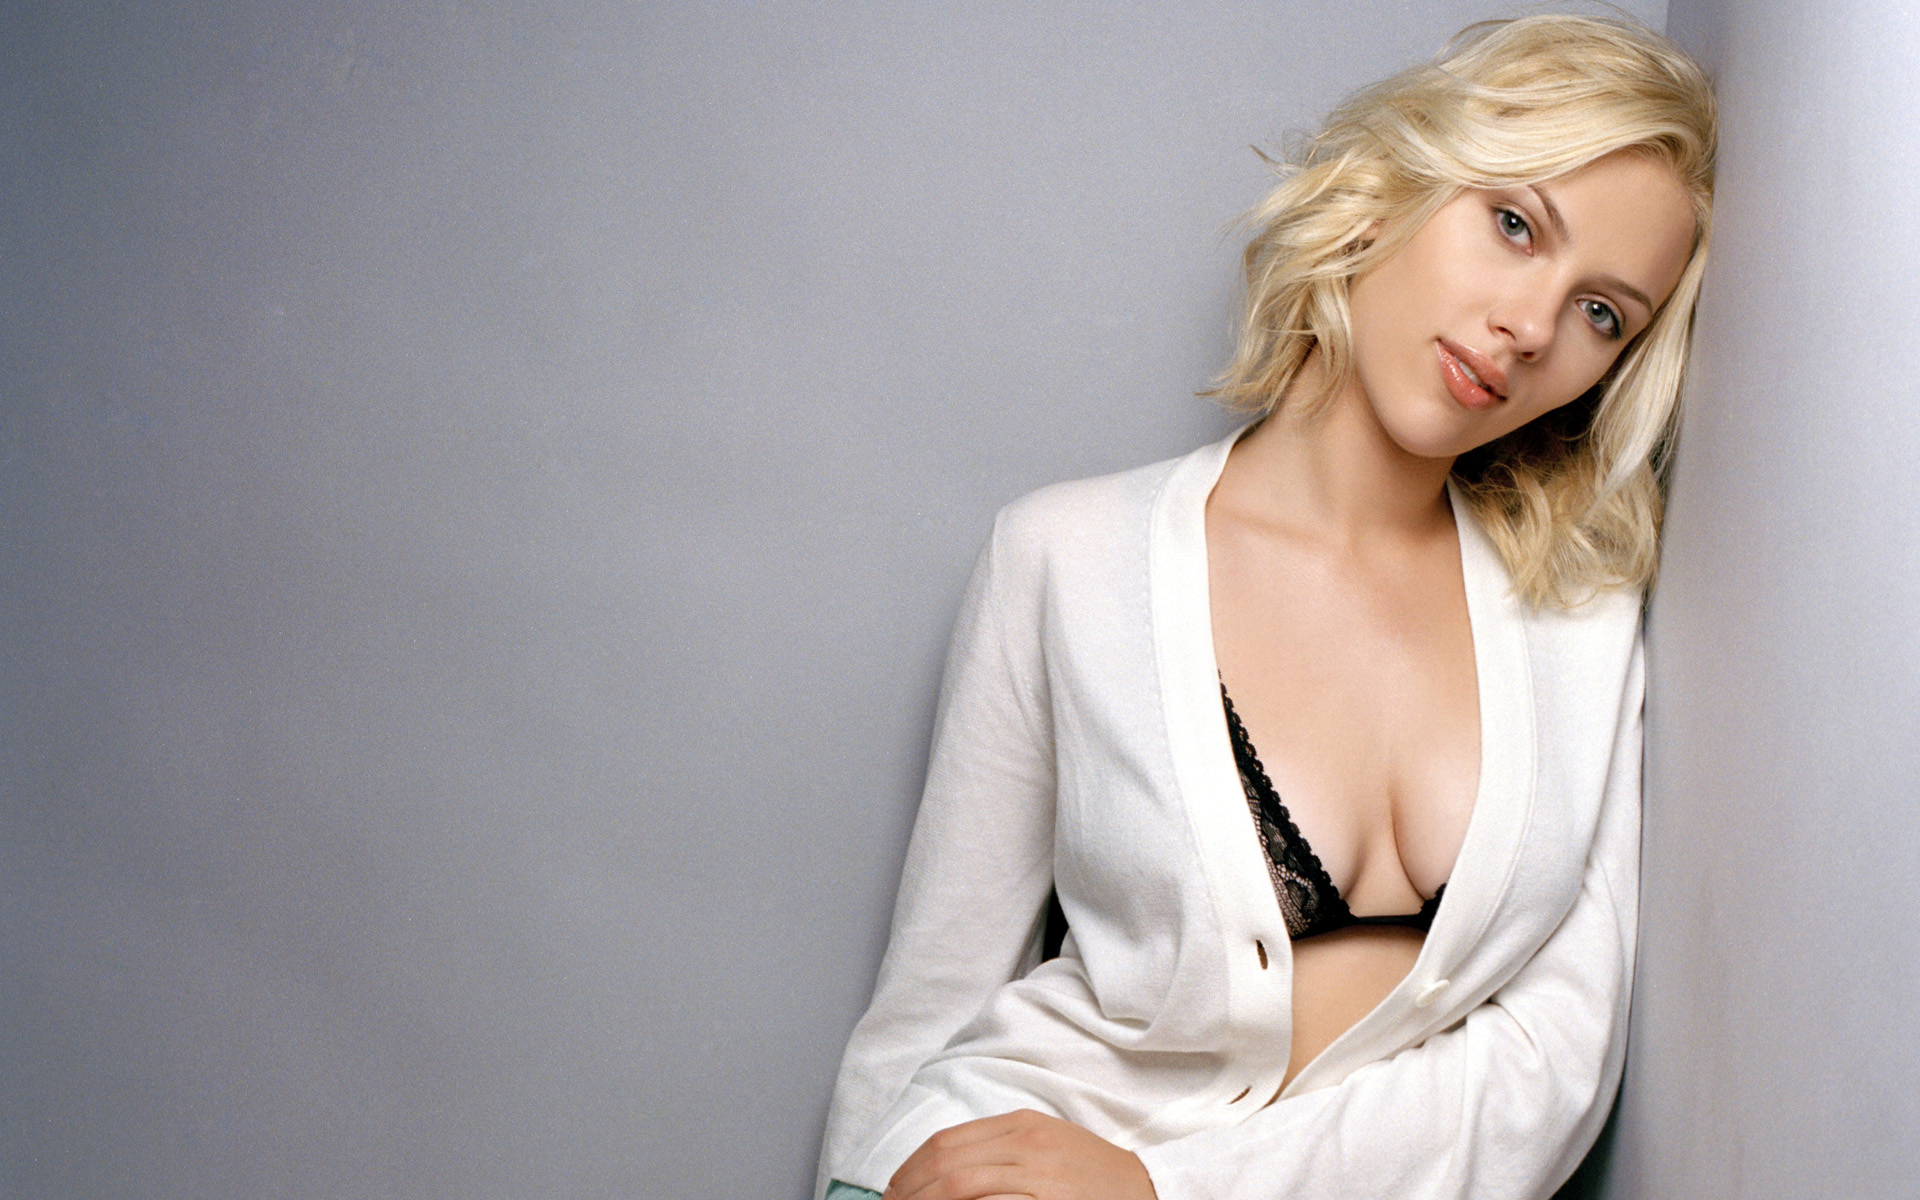 scarlett johansson wallpapers high resolution and quality download